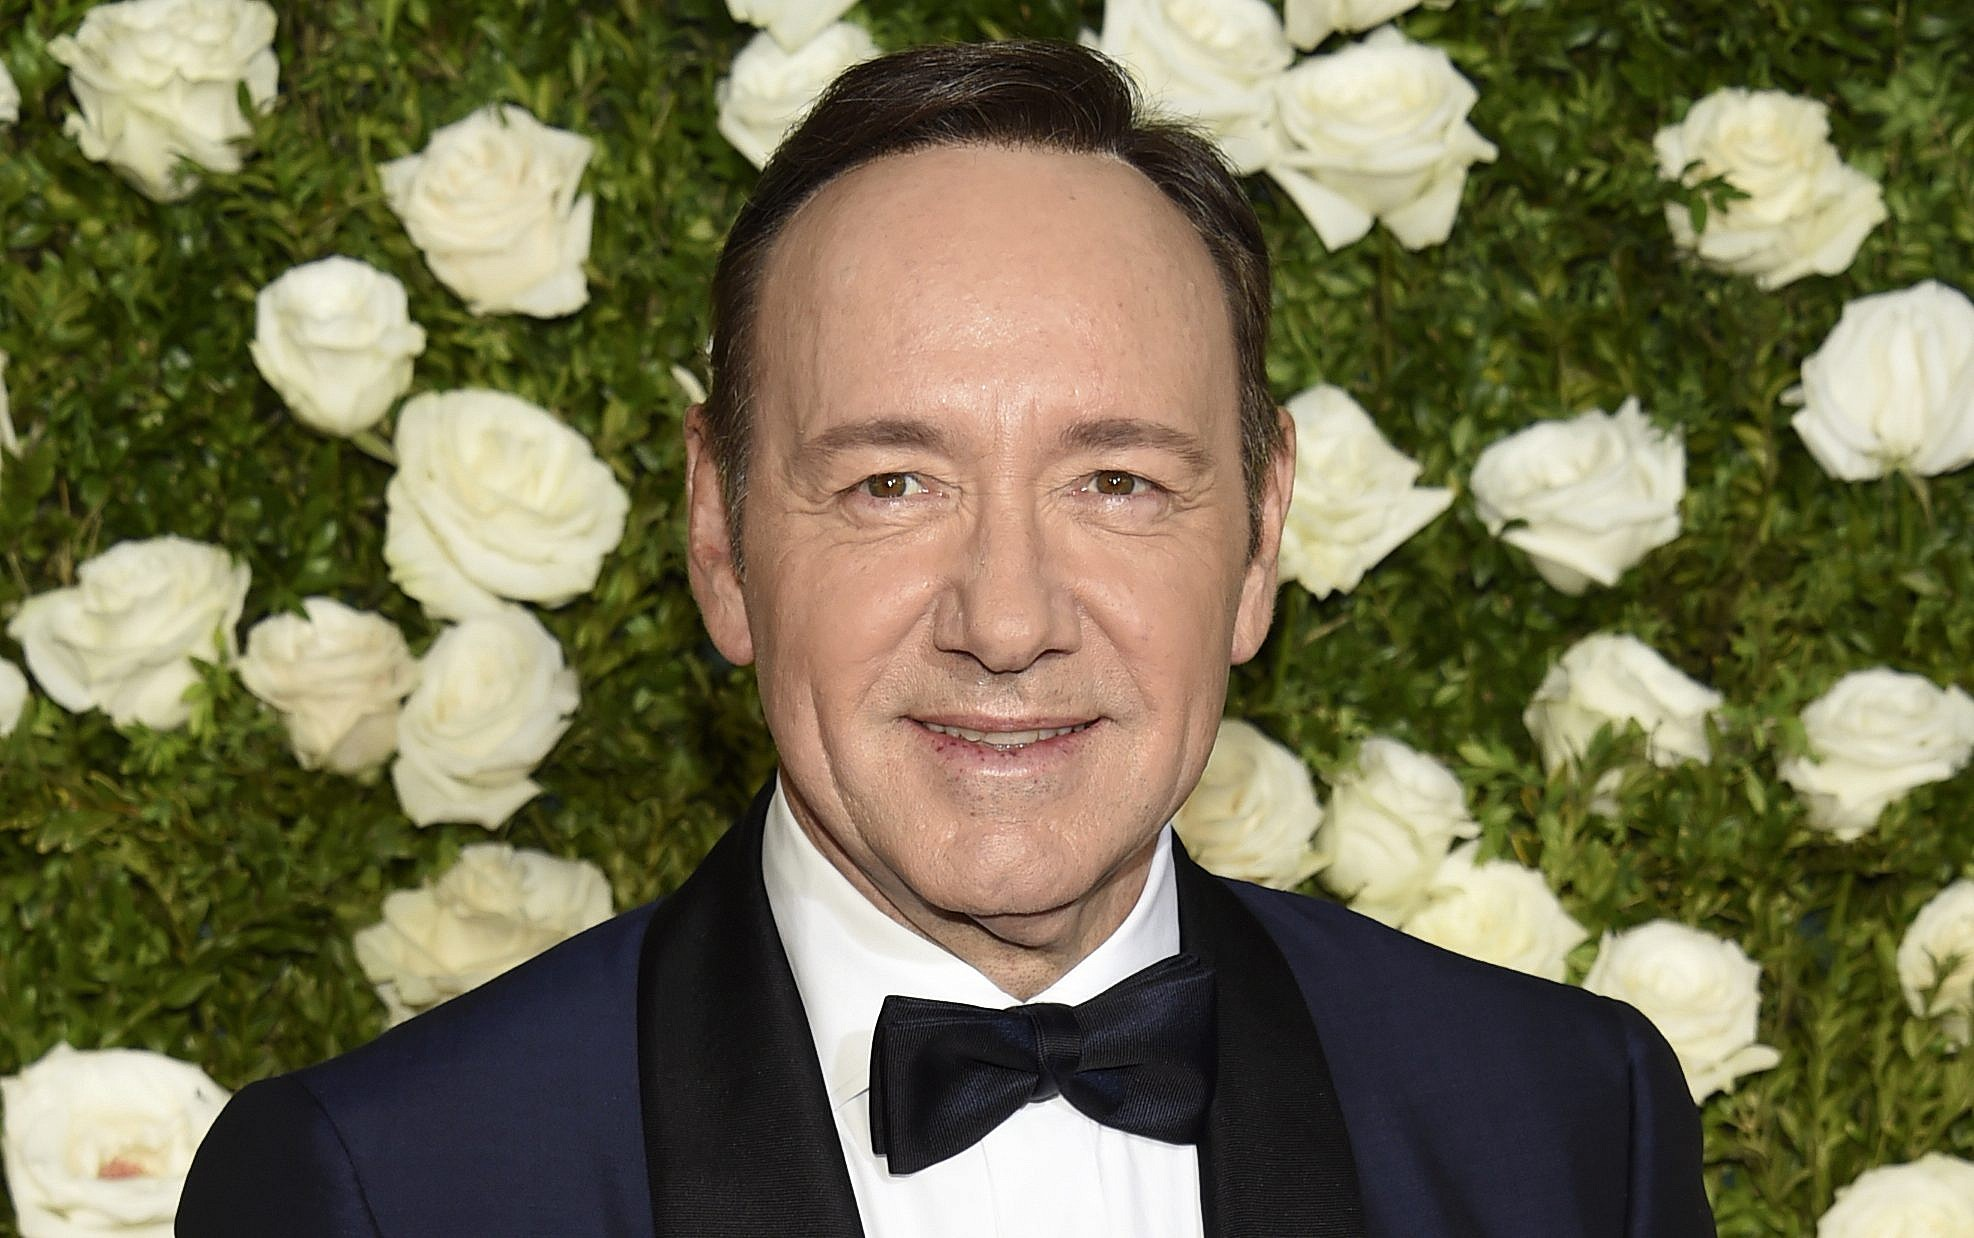 'I woke up with Kevin Spacey lying on me'